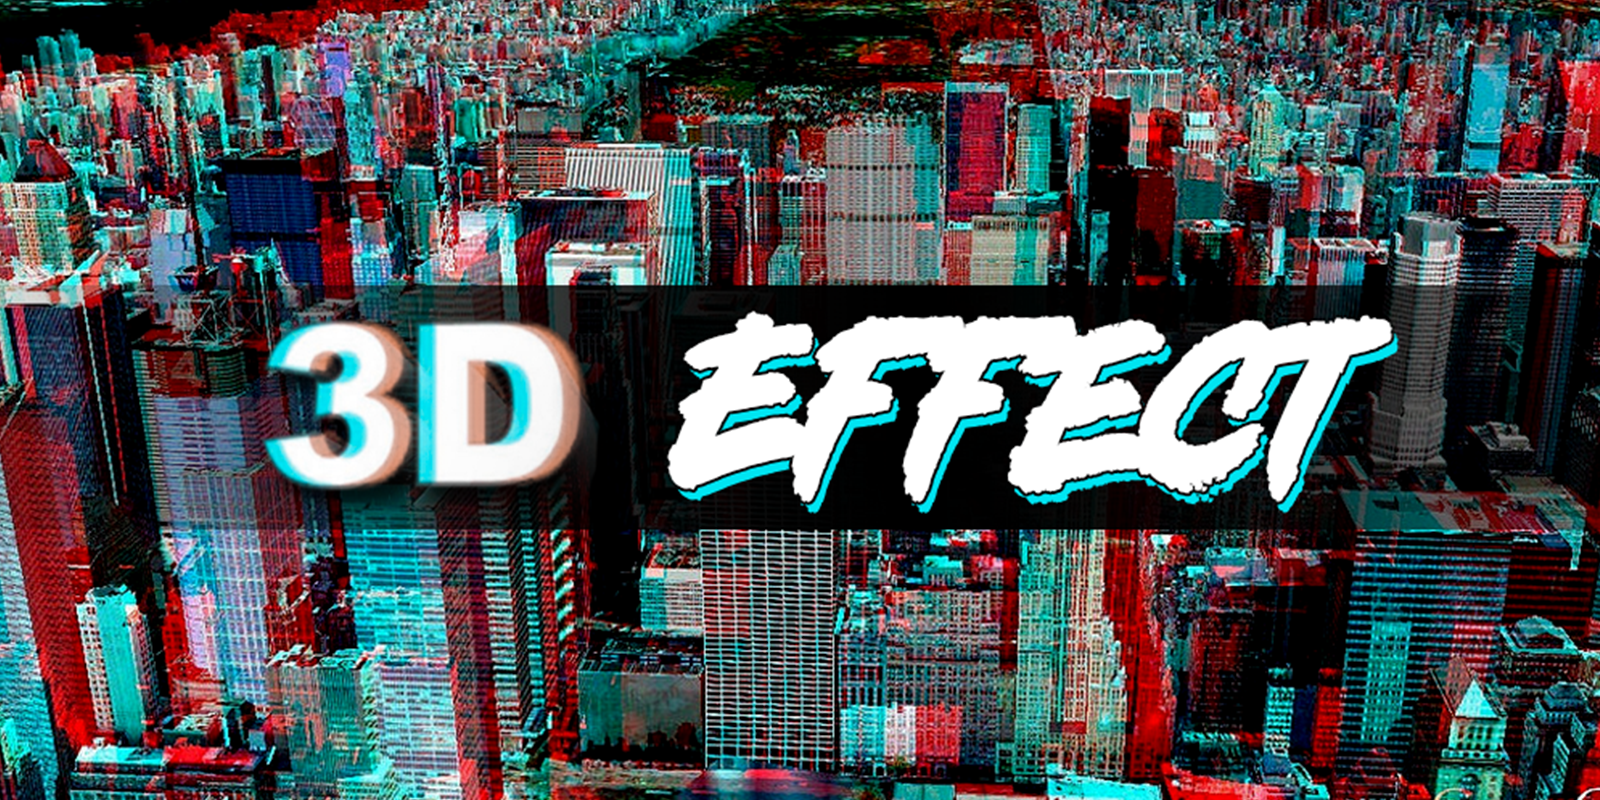 3D Effect Photo Maker - Image Editor Android Application Source Code